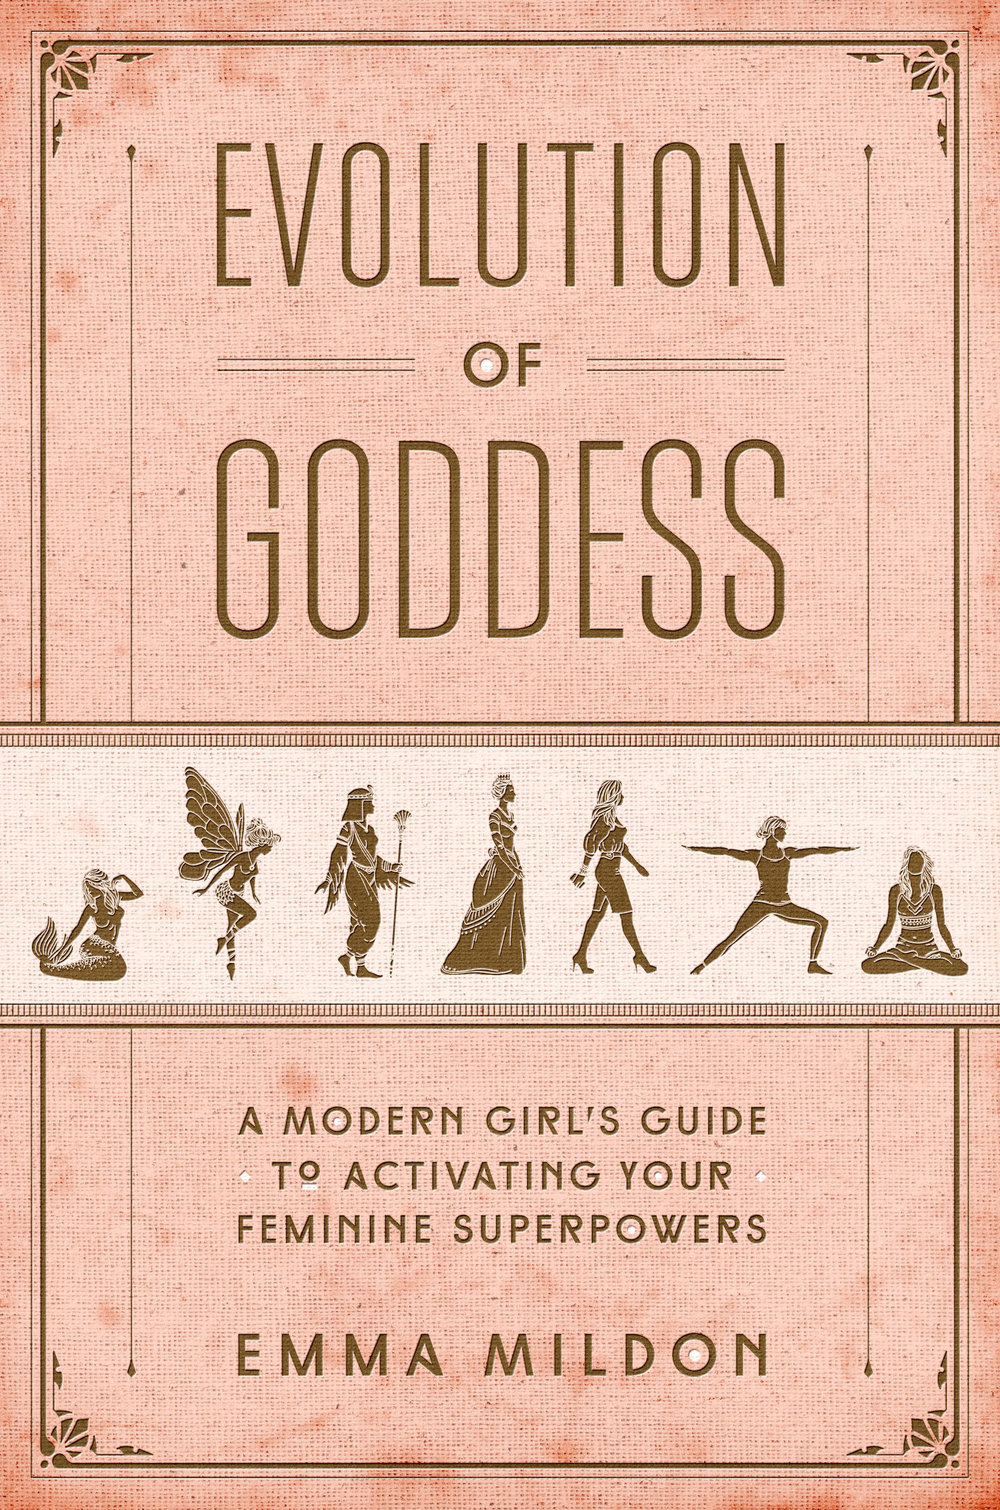 RG_EvolutionOfGoddess_Cover_11.29_v1 (1).jpg